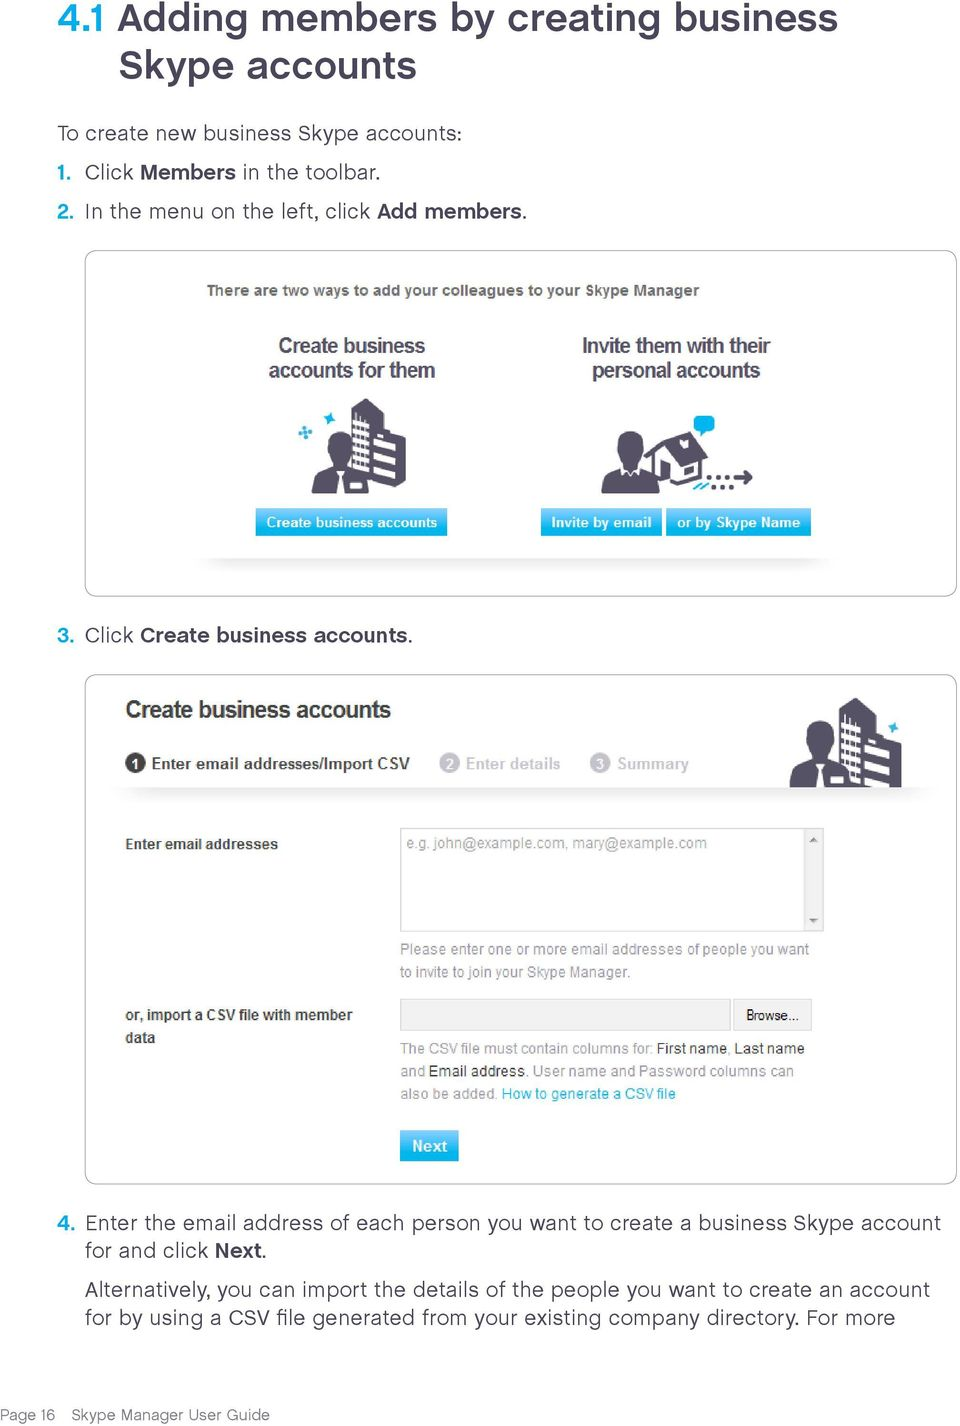 Enter the email address of each person you want to create a business Skype account for and click Next.